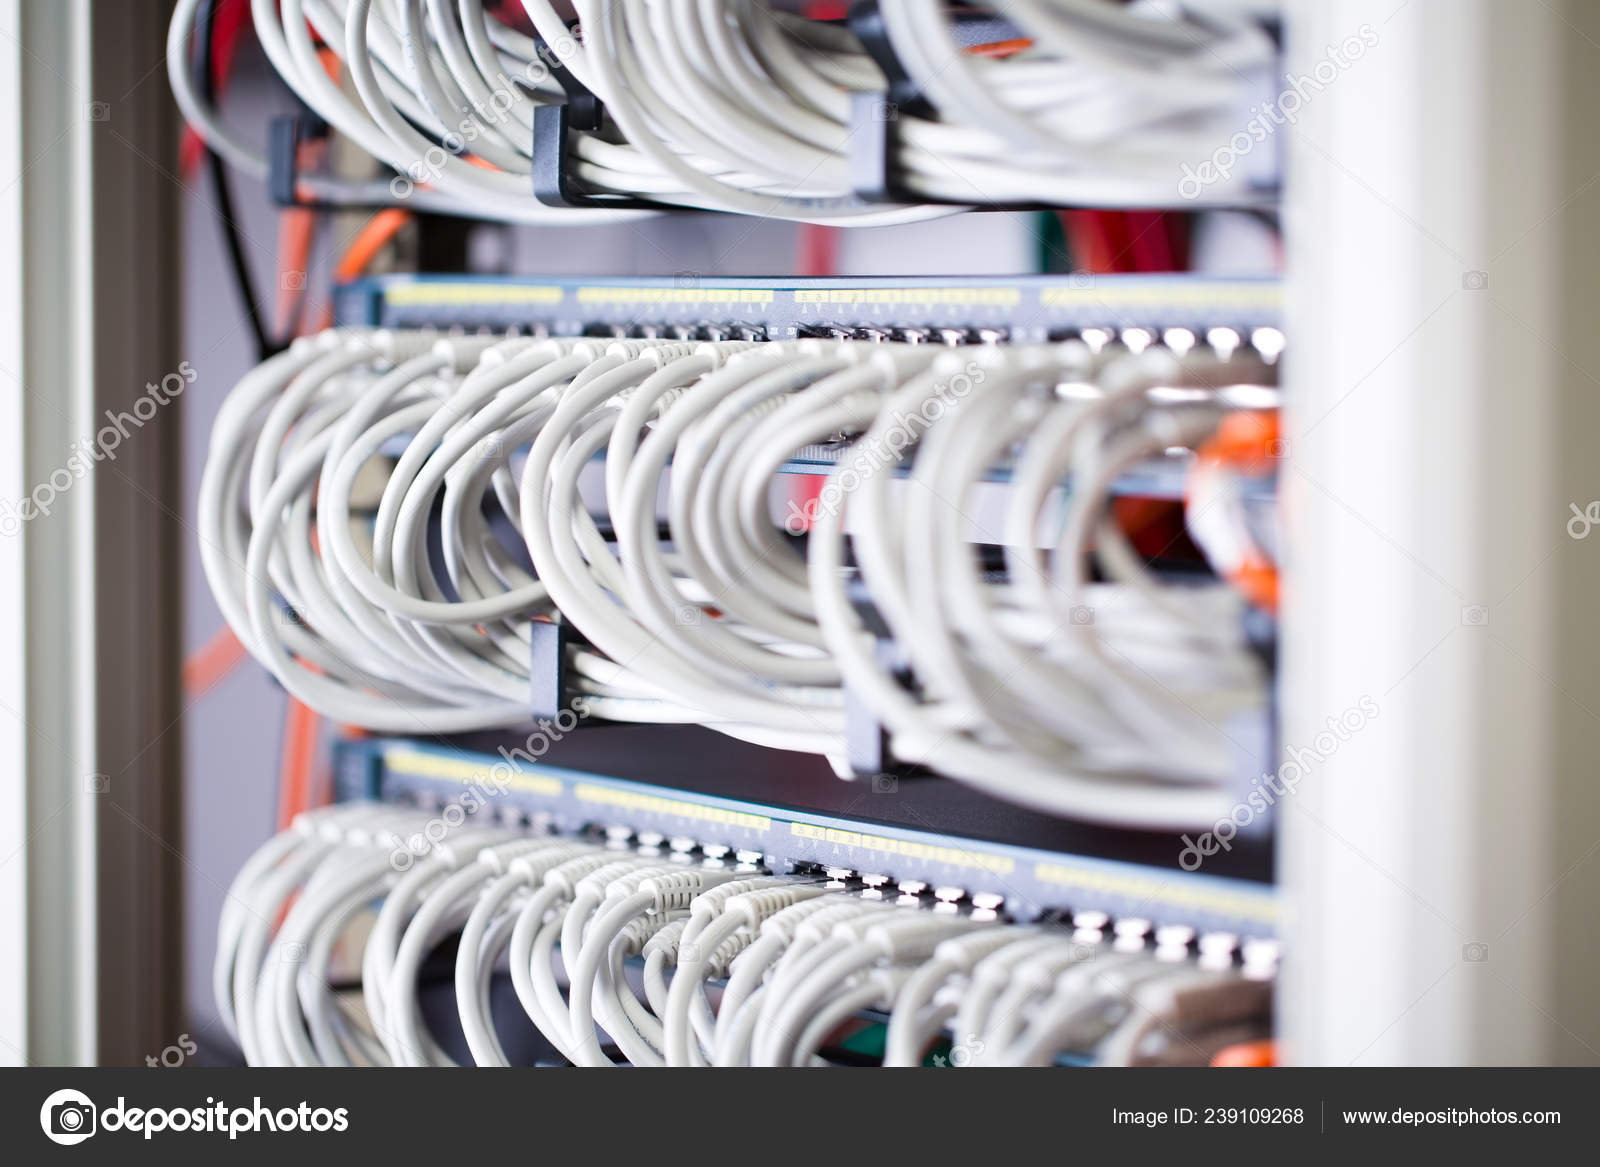 Cable #5A Keown Variant VF 2017 Stock Image